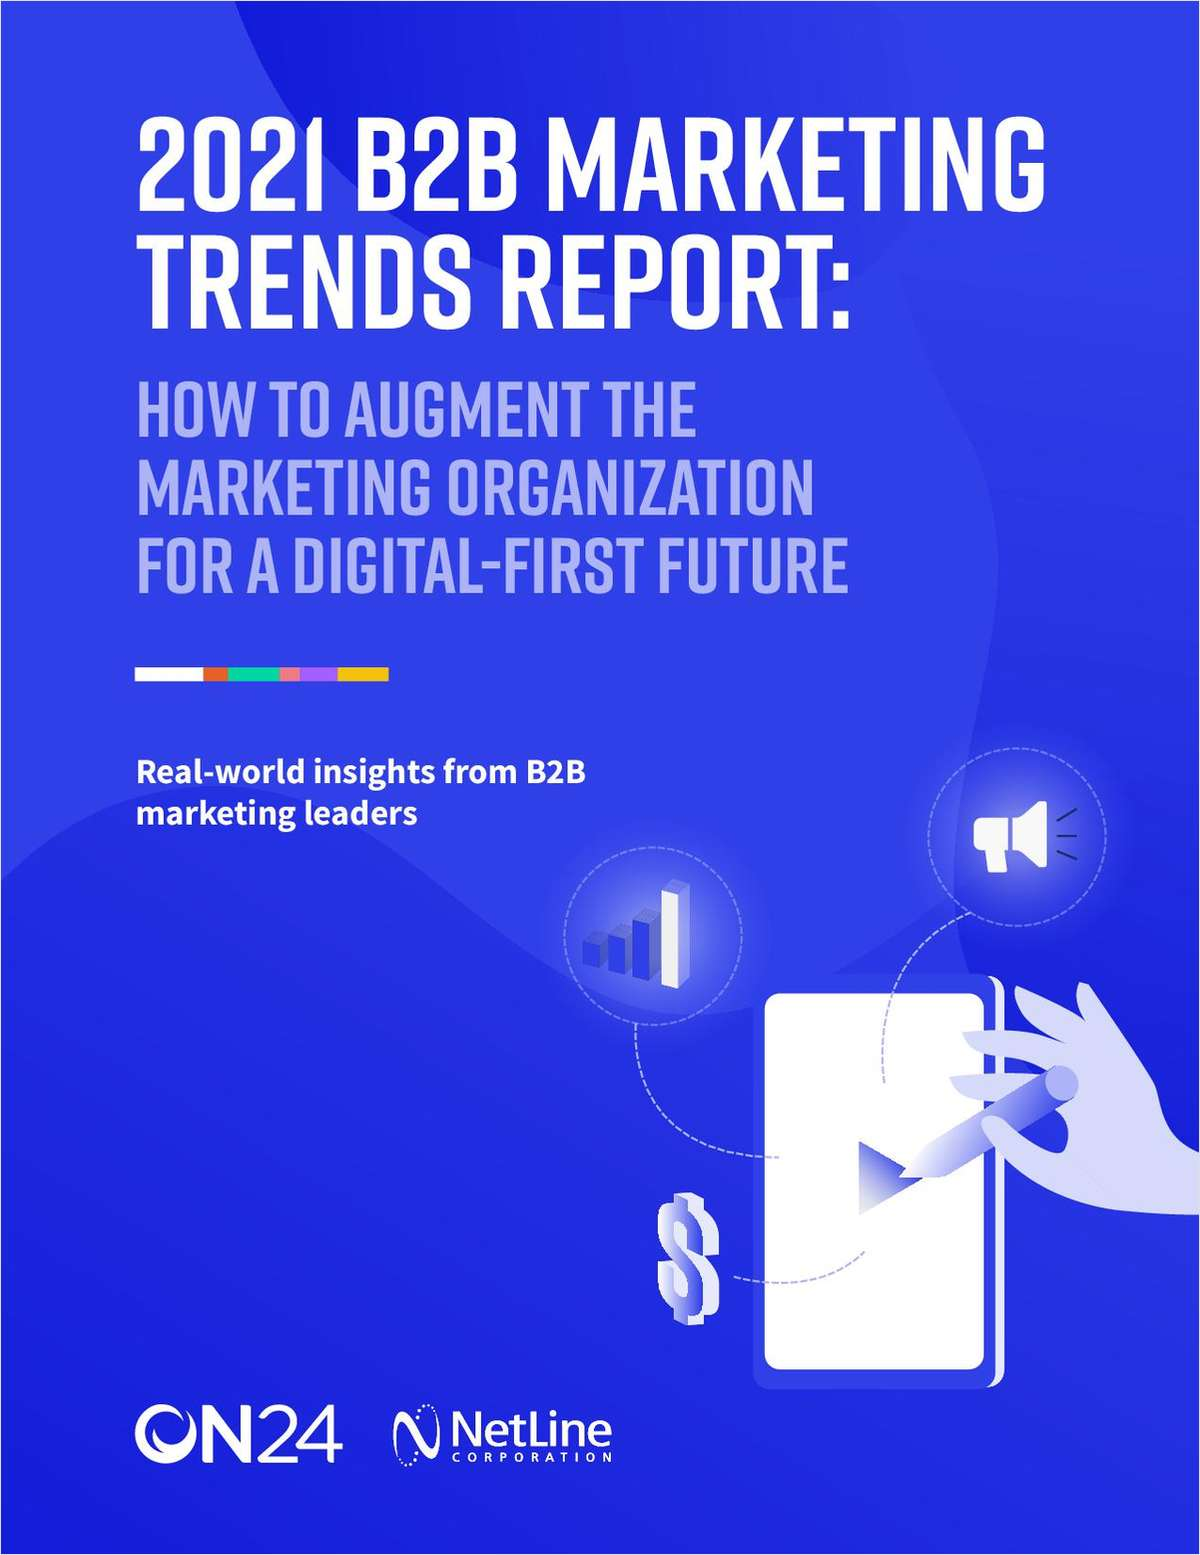 2021 B2B Marketing Trends Report: How to Augment the Marketing Organization for a Digital-First Future